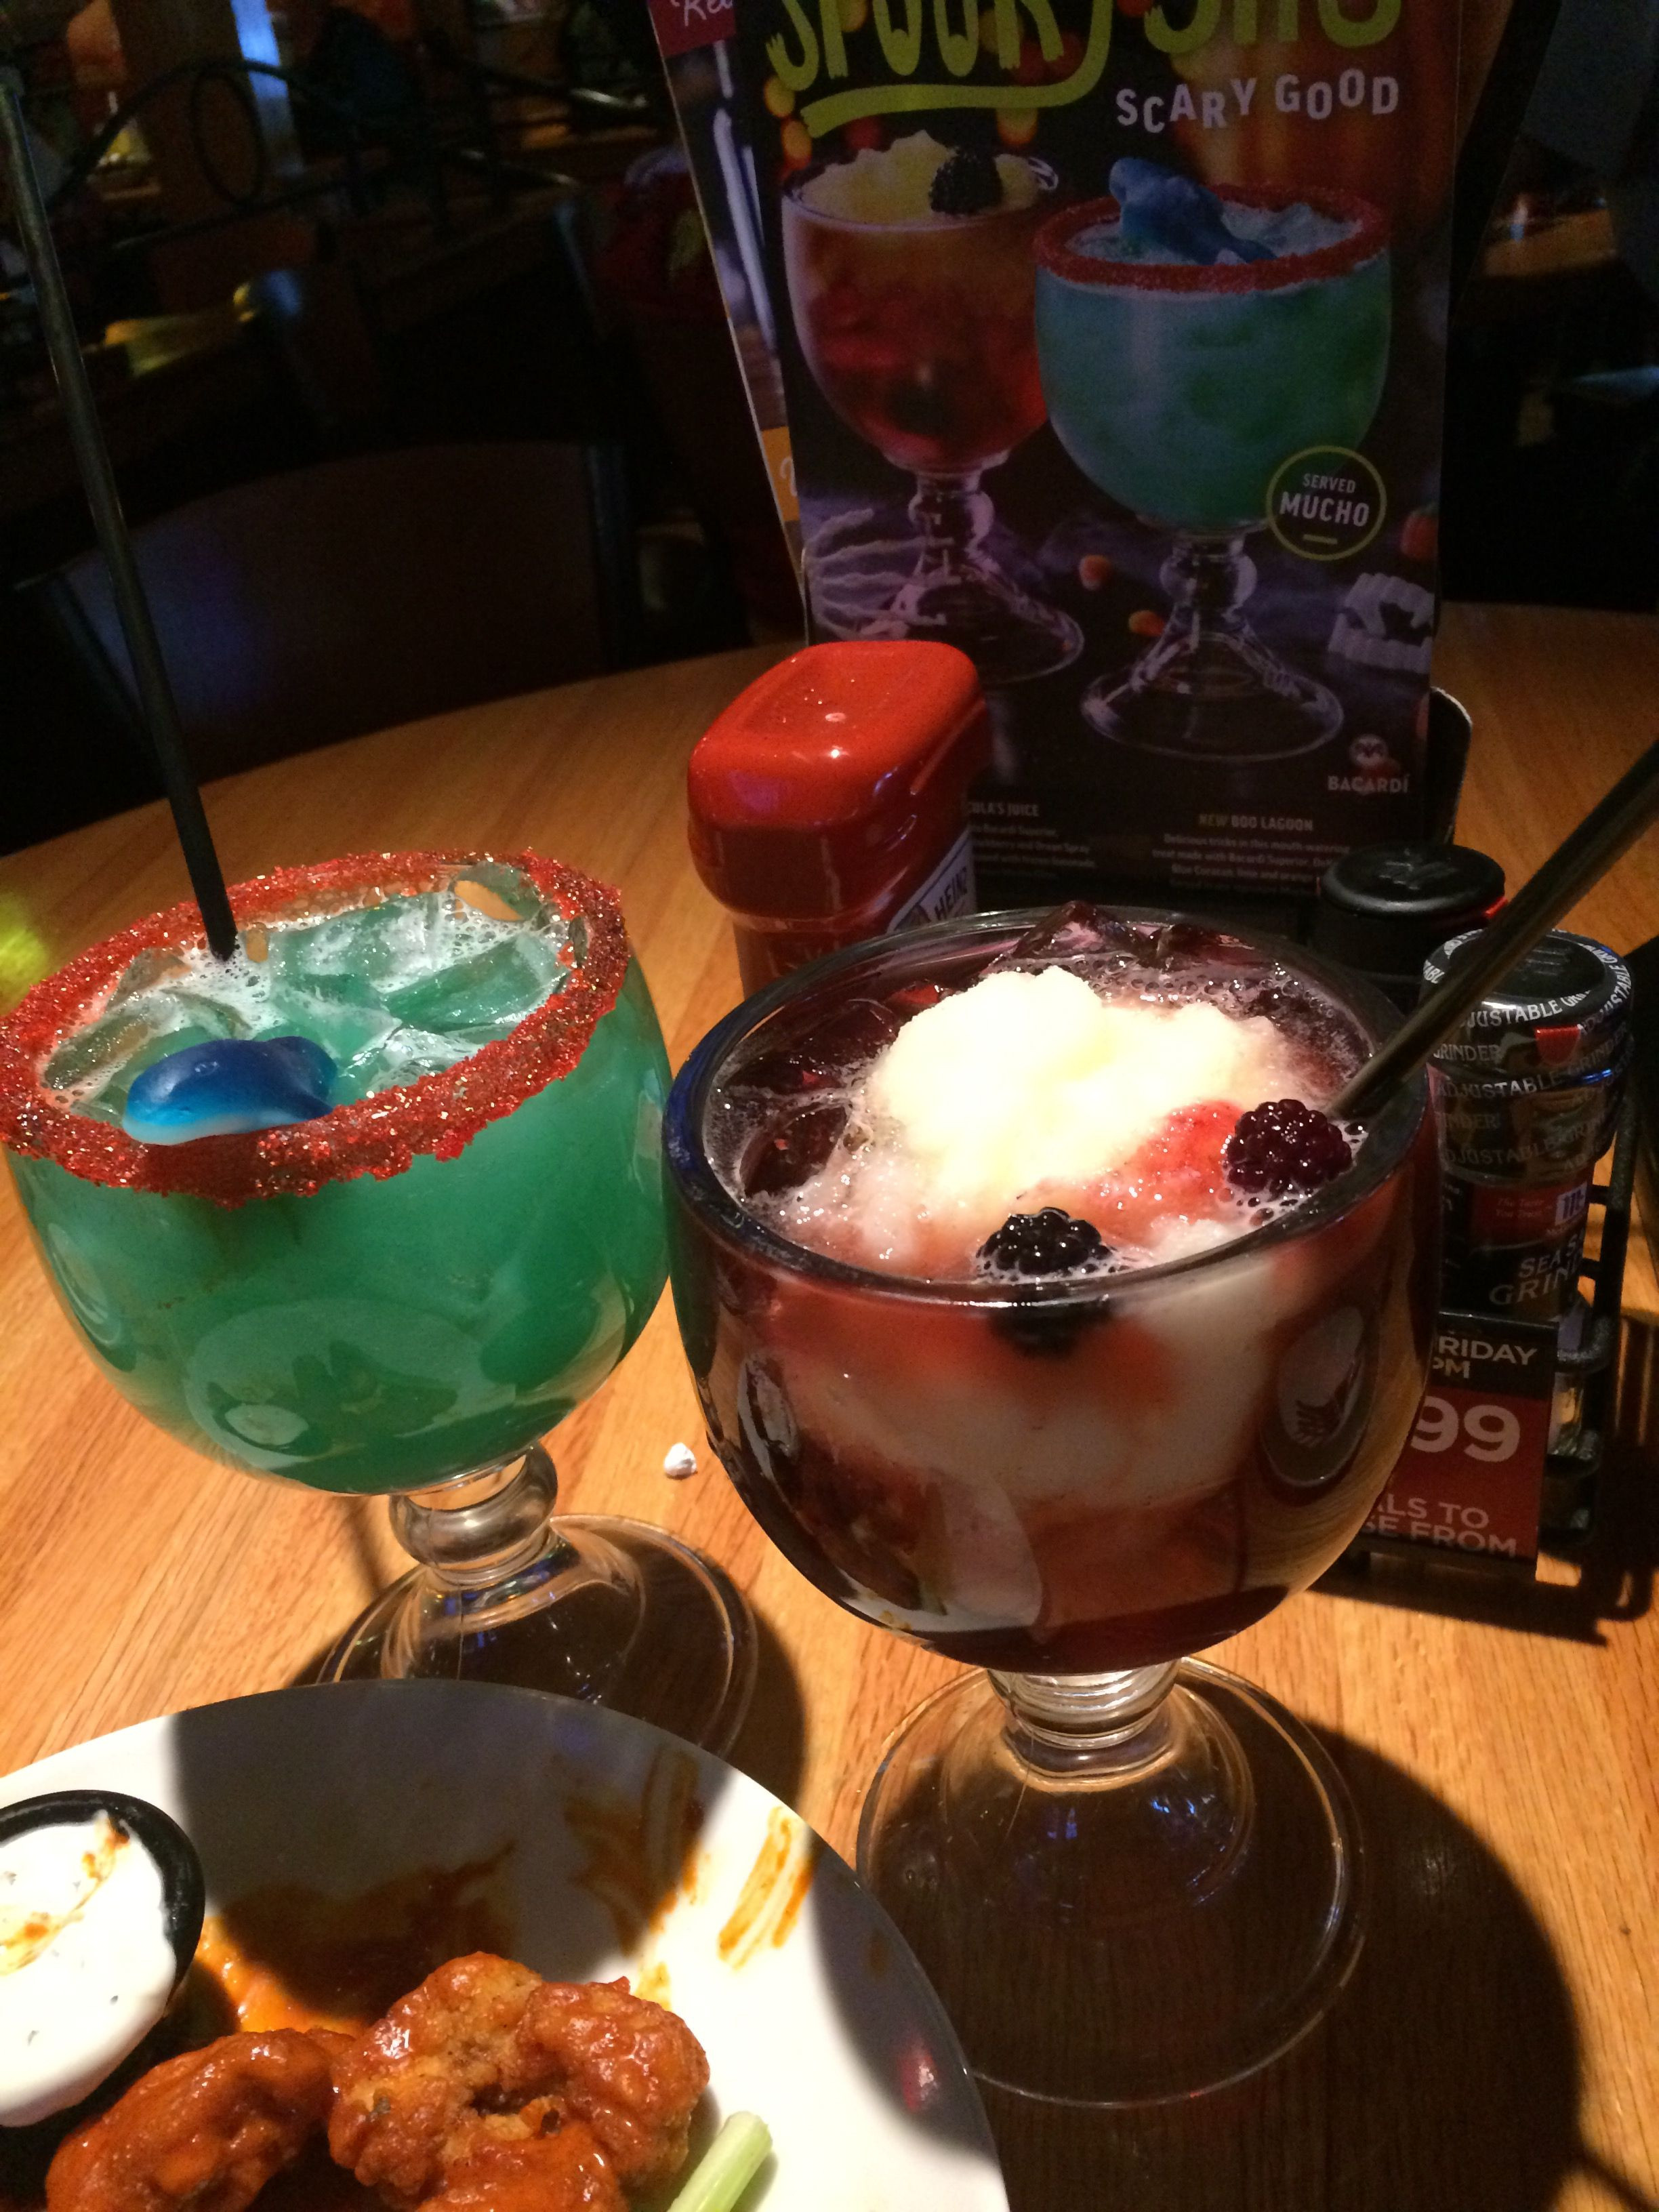 Applebees Halloween Drinks  Applebee's New Halloween Themed Drinks Yumm They're